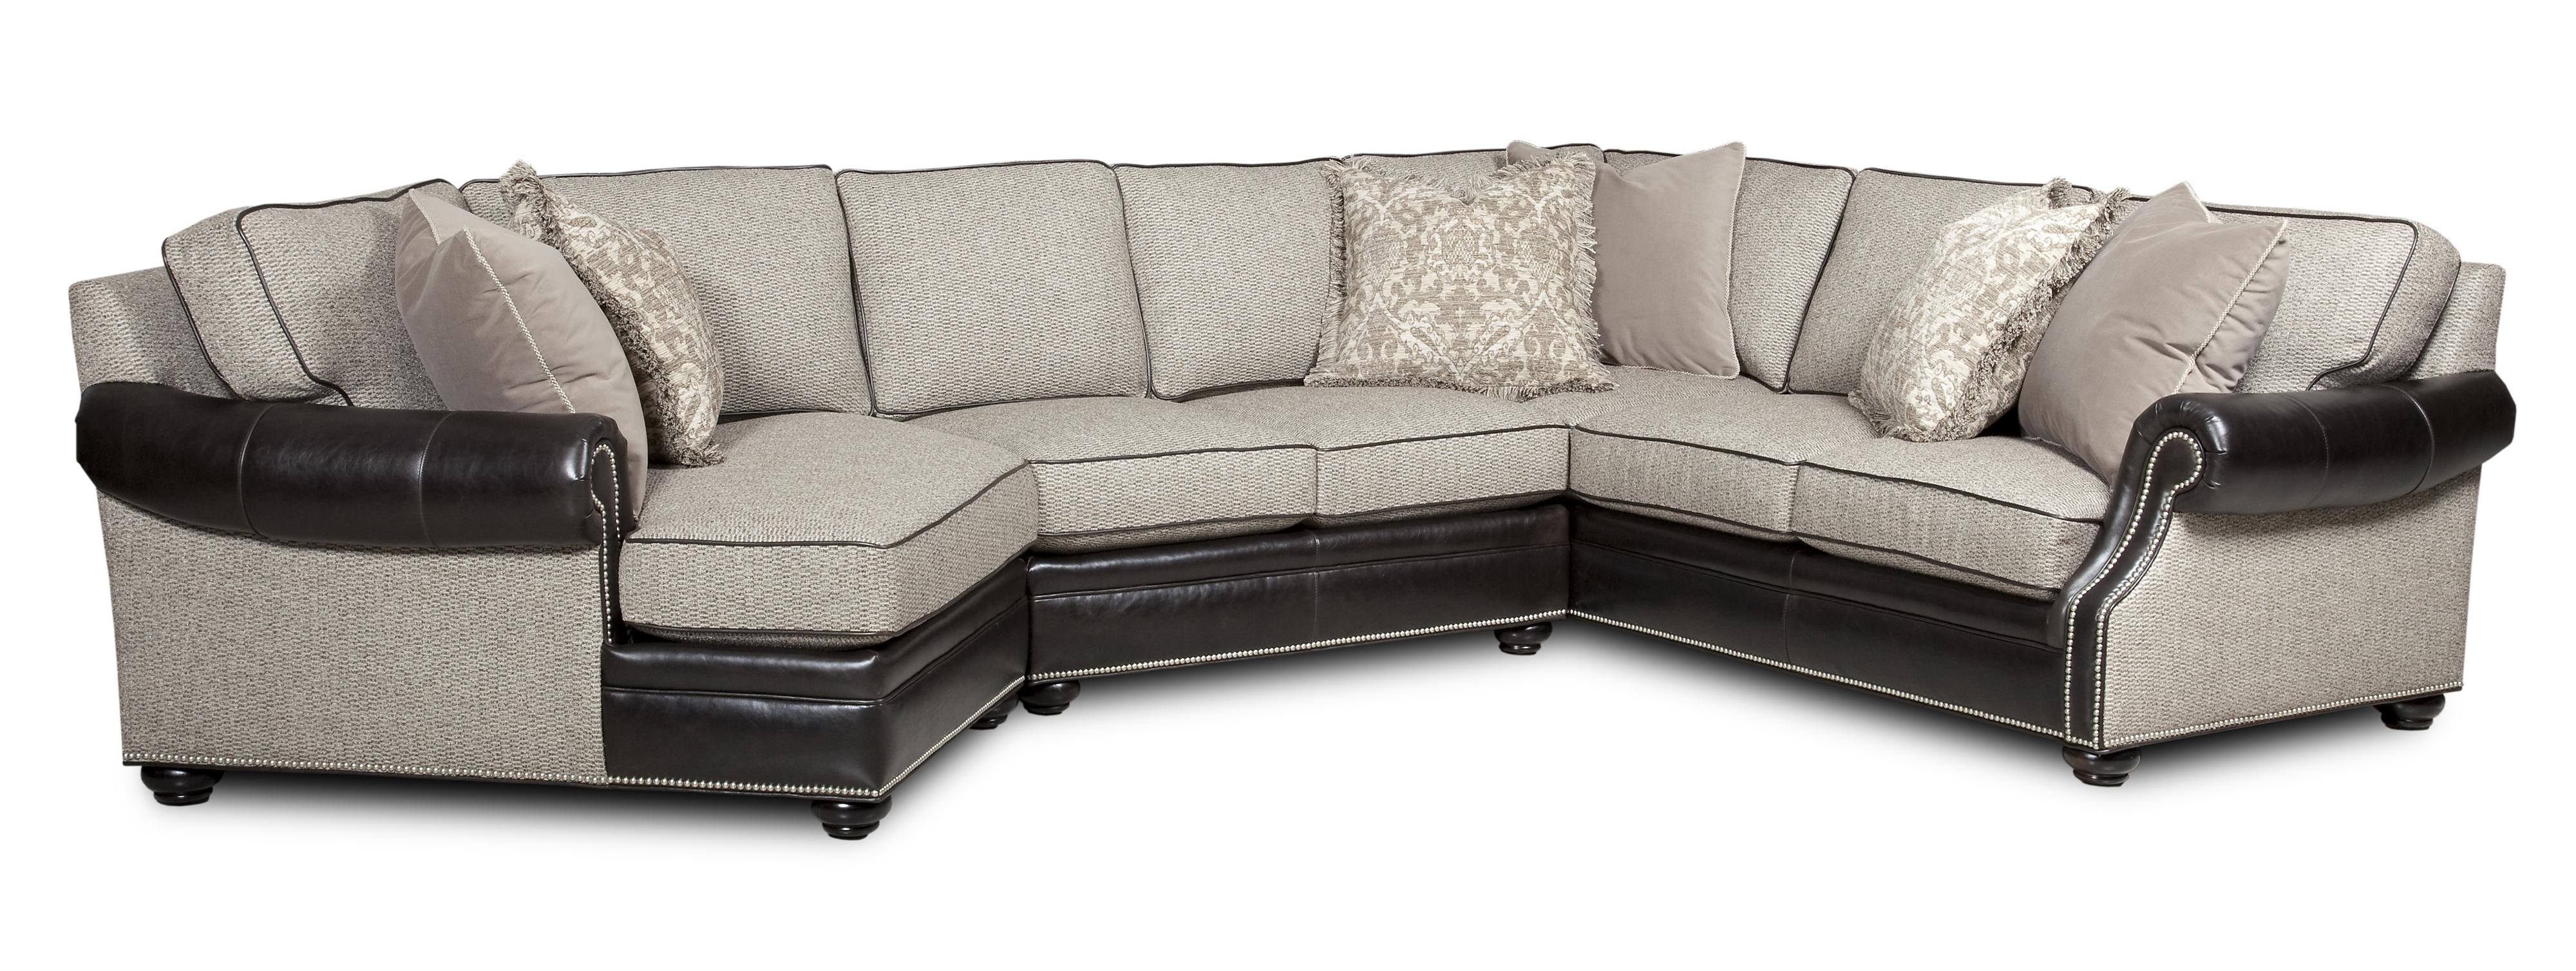 Bradington Young Warner Three Piece Sectional Sofa with LAF Cuddler - AHFA - Sofa Sectional Dealer Locator  sc 1 st  Furniture Dealer Locator - Find your furniture : sectional sofa cuddler - Sectionals, Sofas & Couches